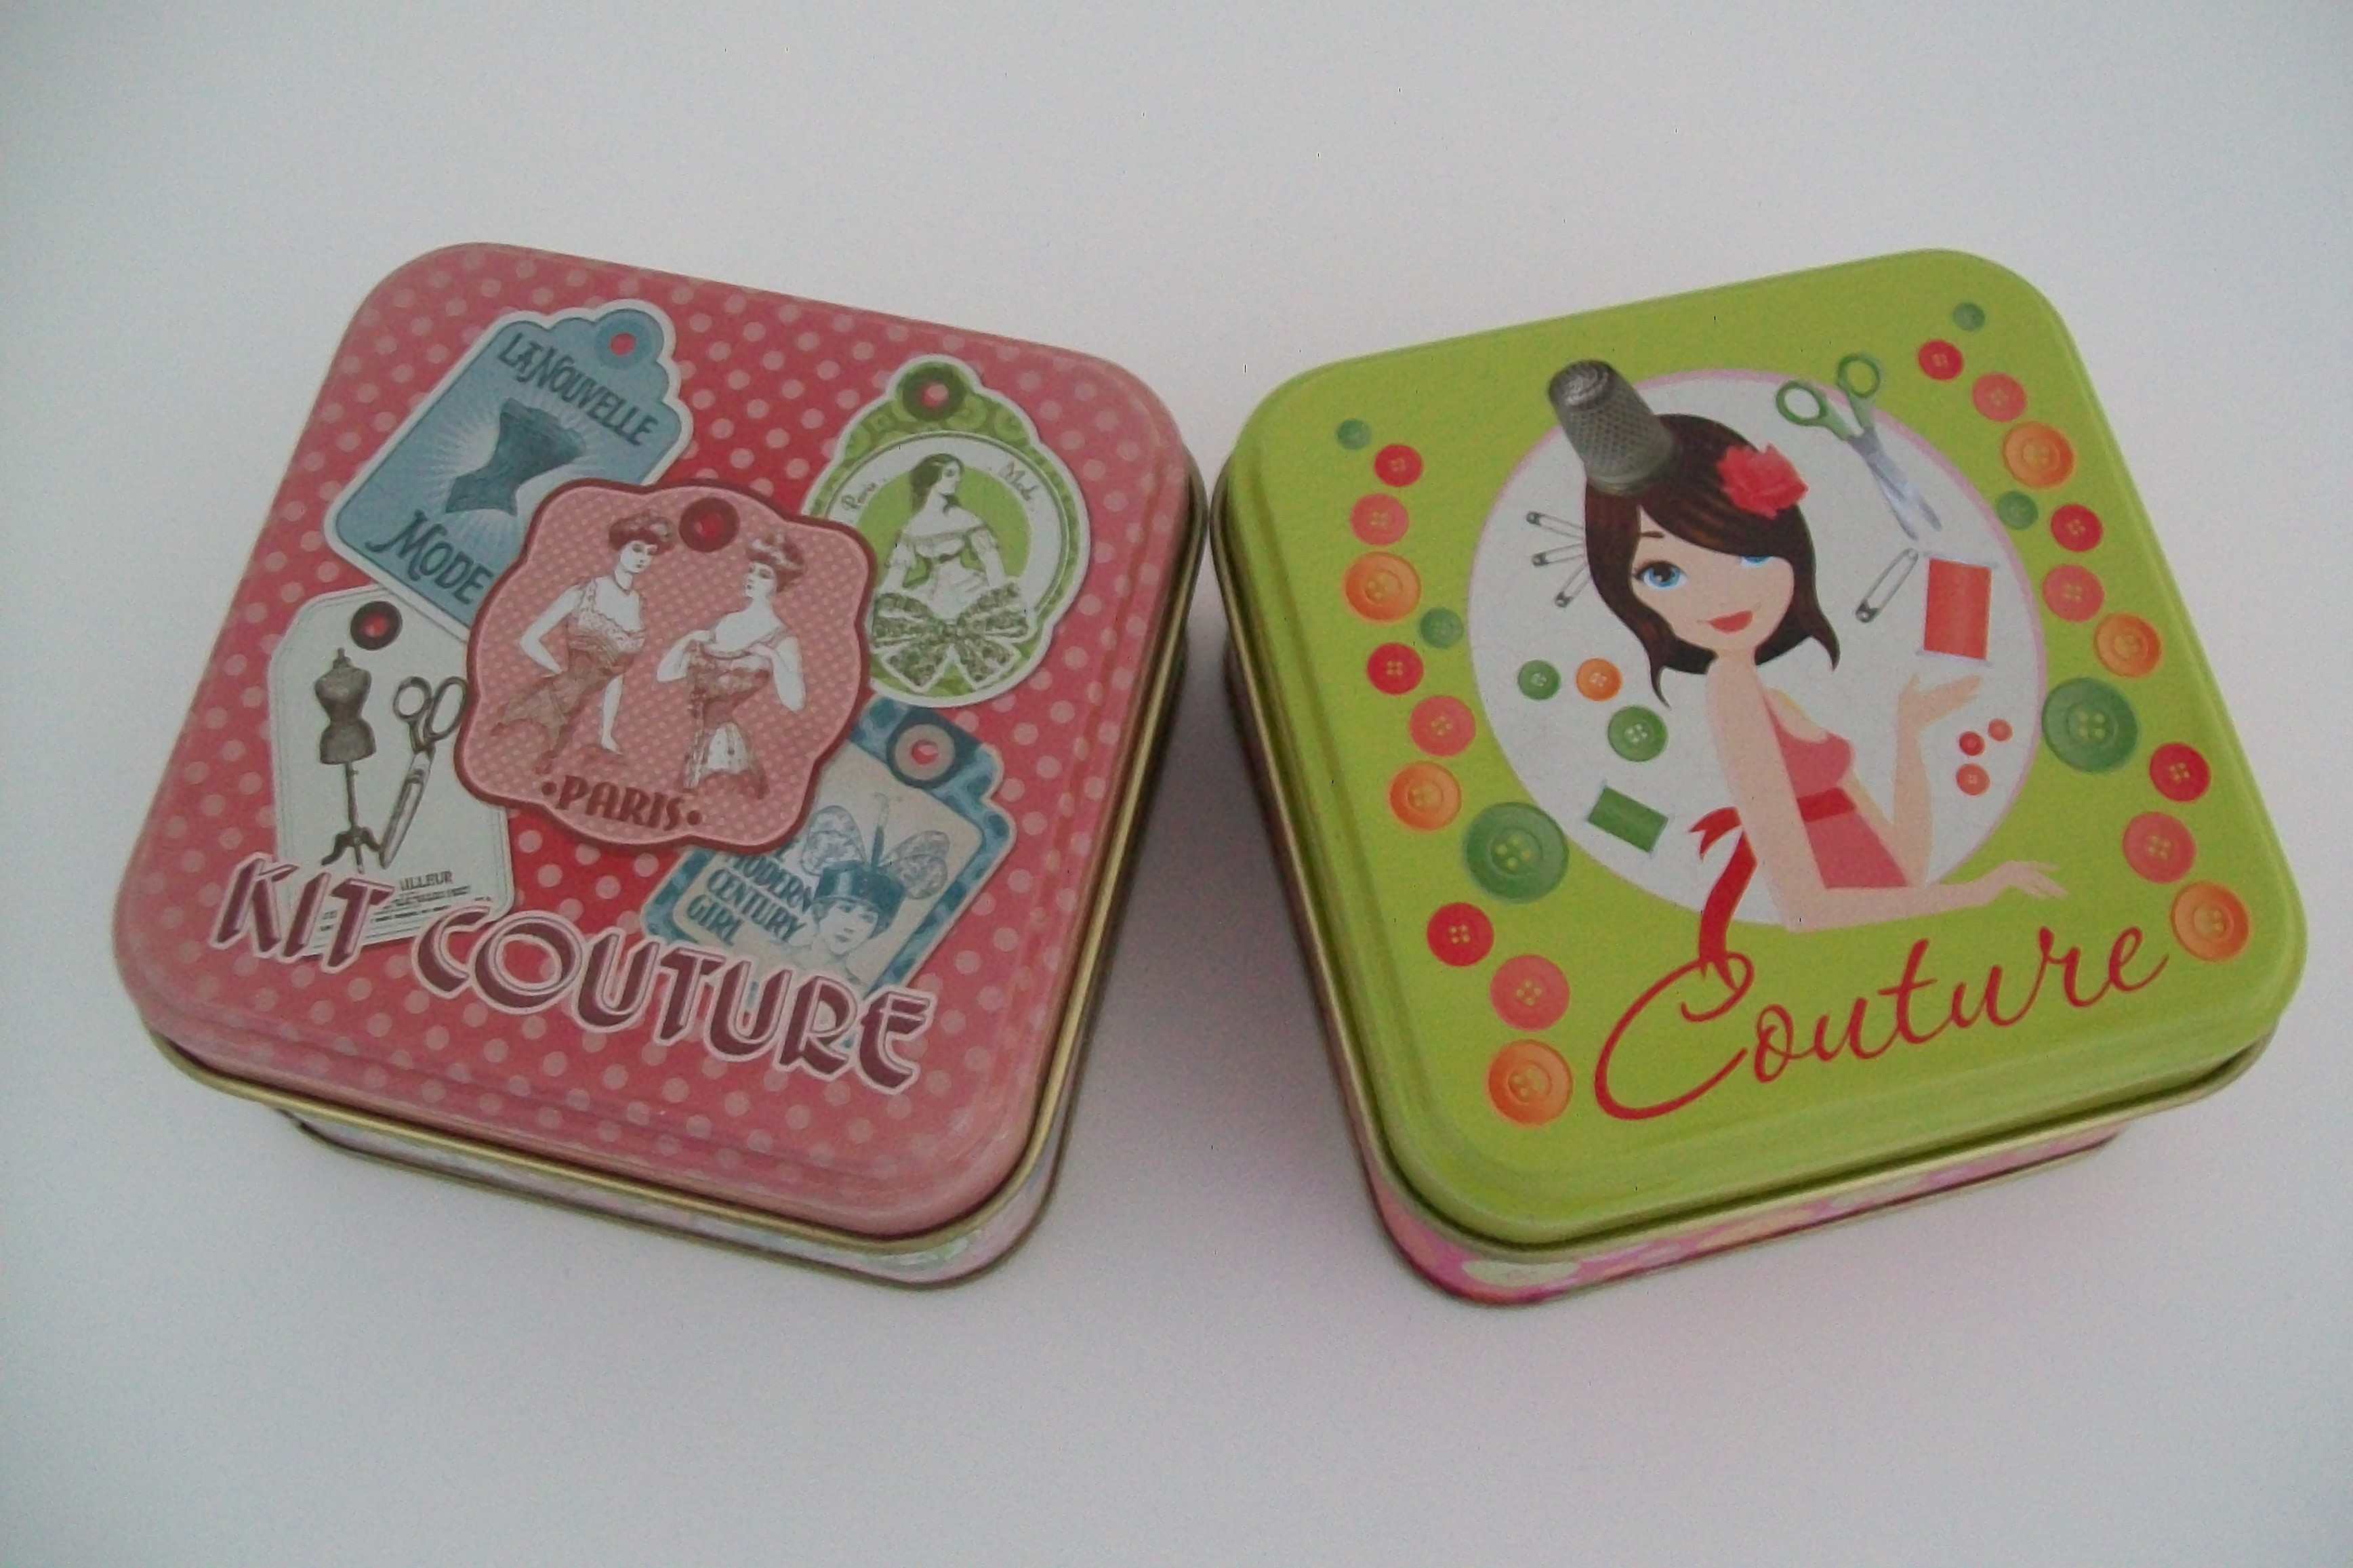 Petits accessoires mercerie couture cr a pecam utiles for Boite a couture metal